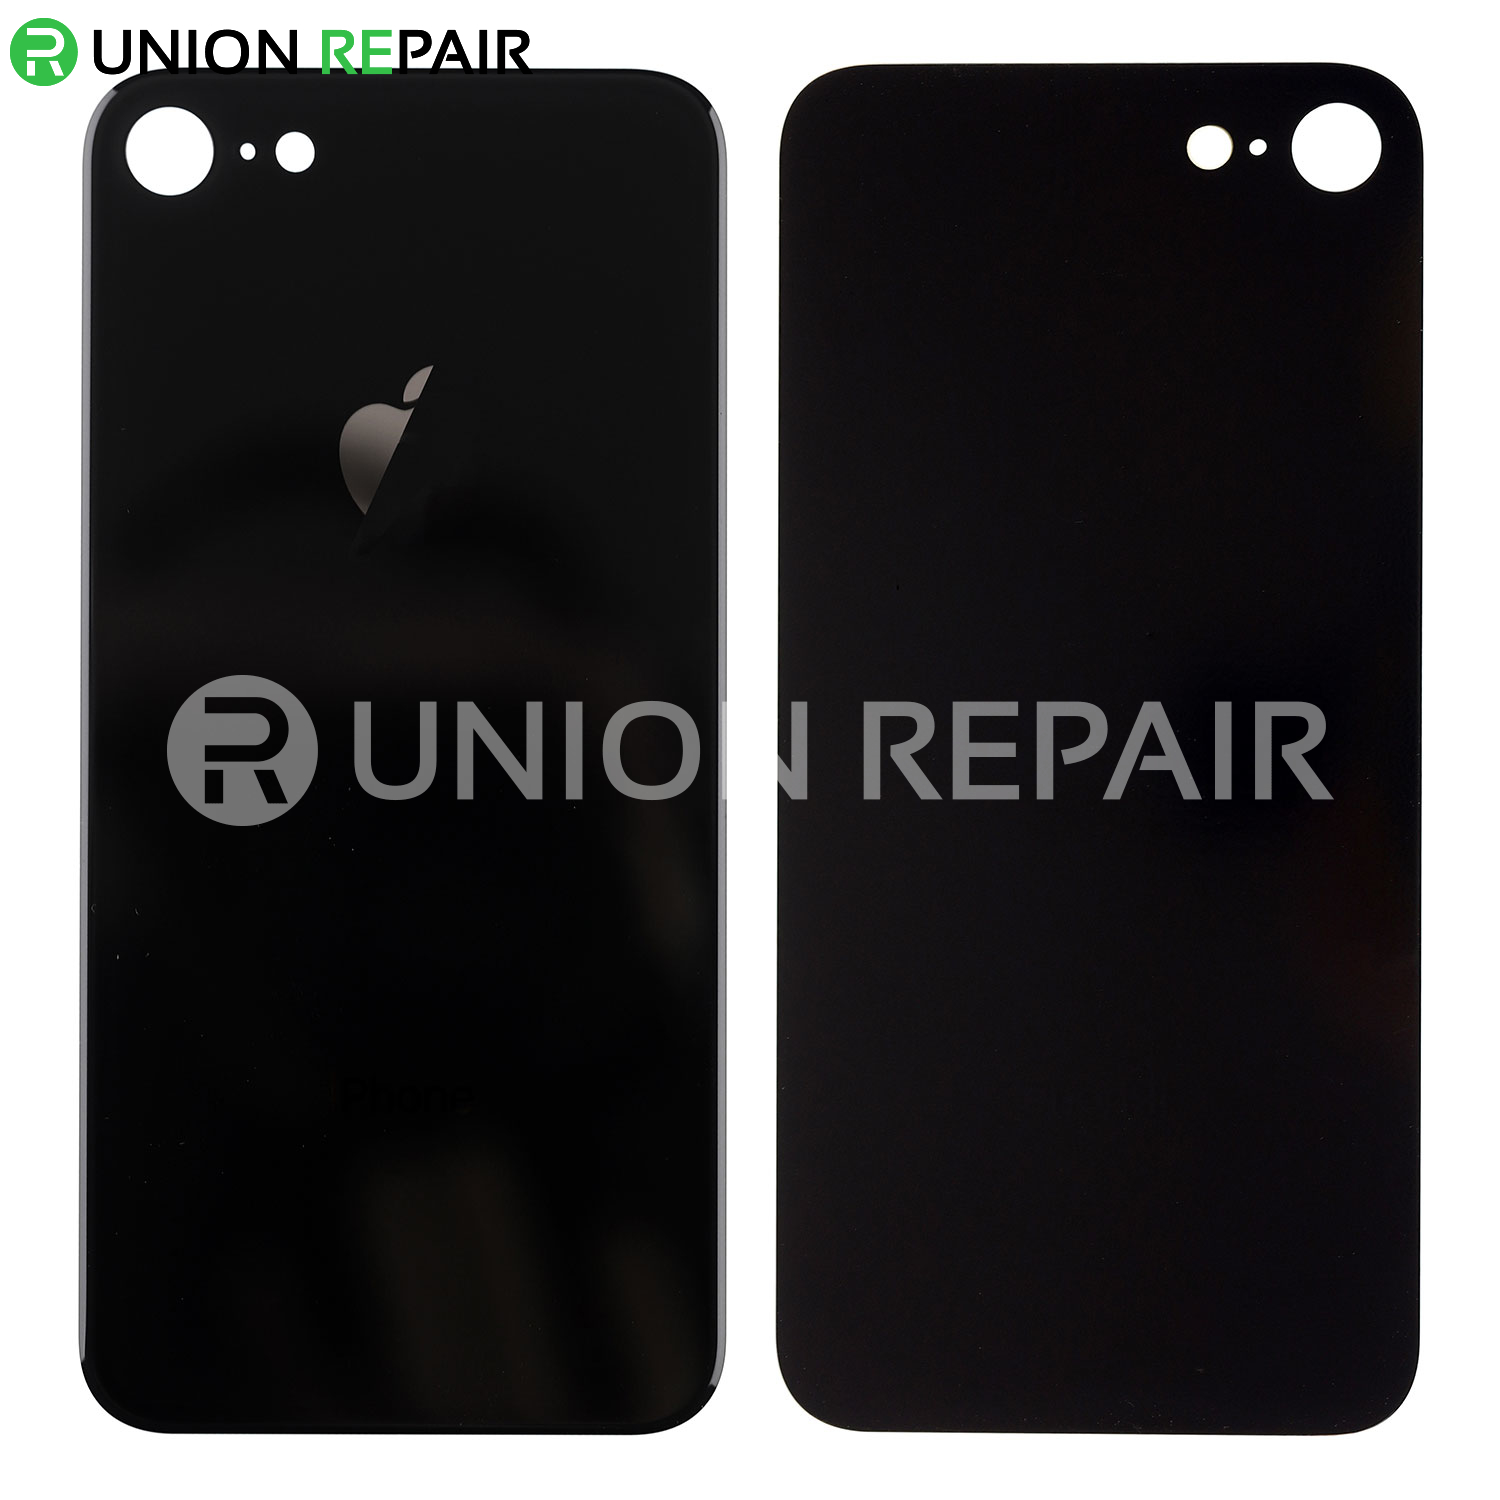 on sale f1a9b ee93c Replacement for iPhone 8 Back Cover - Space Gray